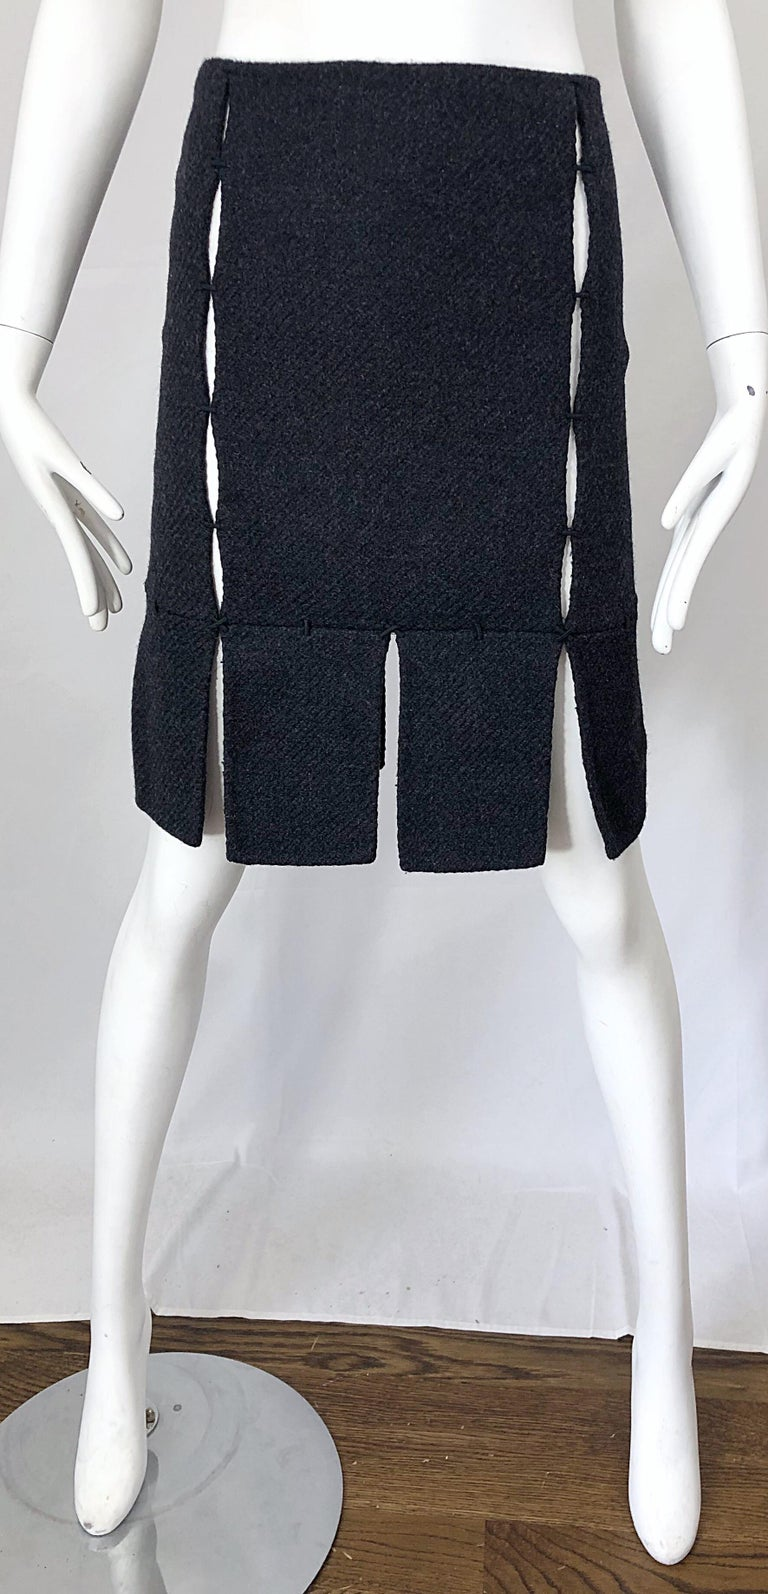 1990s Prada Charcoal Grey Cut - Out High Waisted Wool Vintage 90s Pencil Skirt For Sale 9